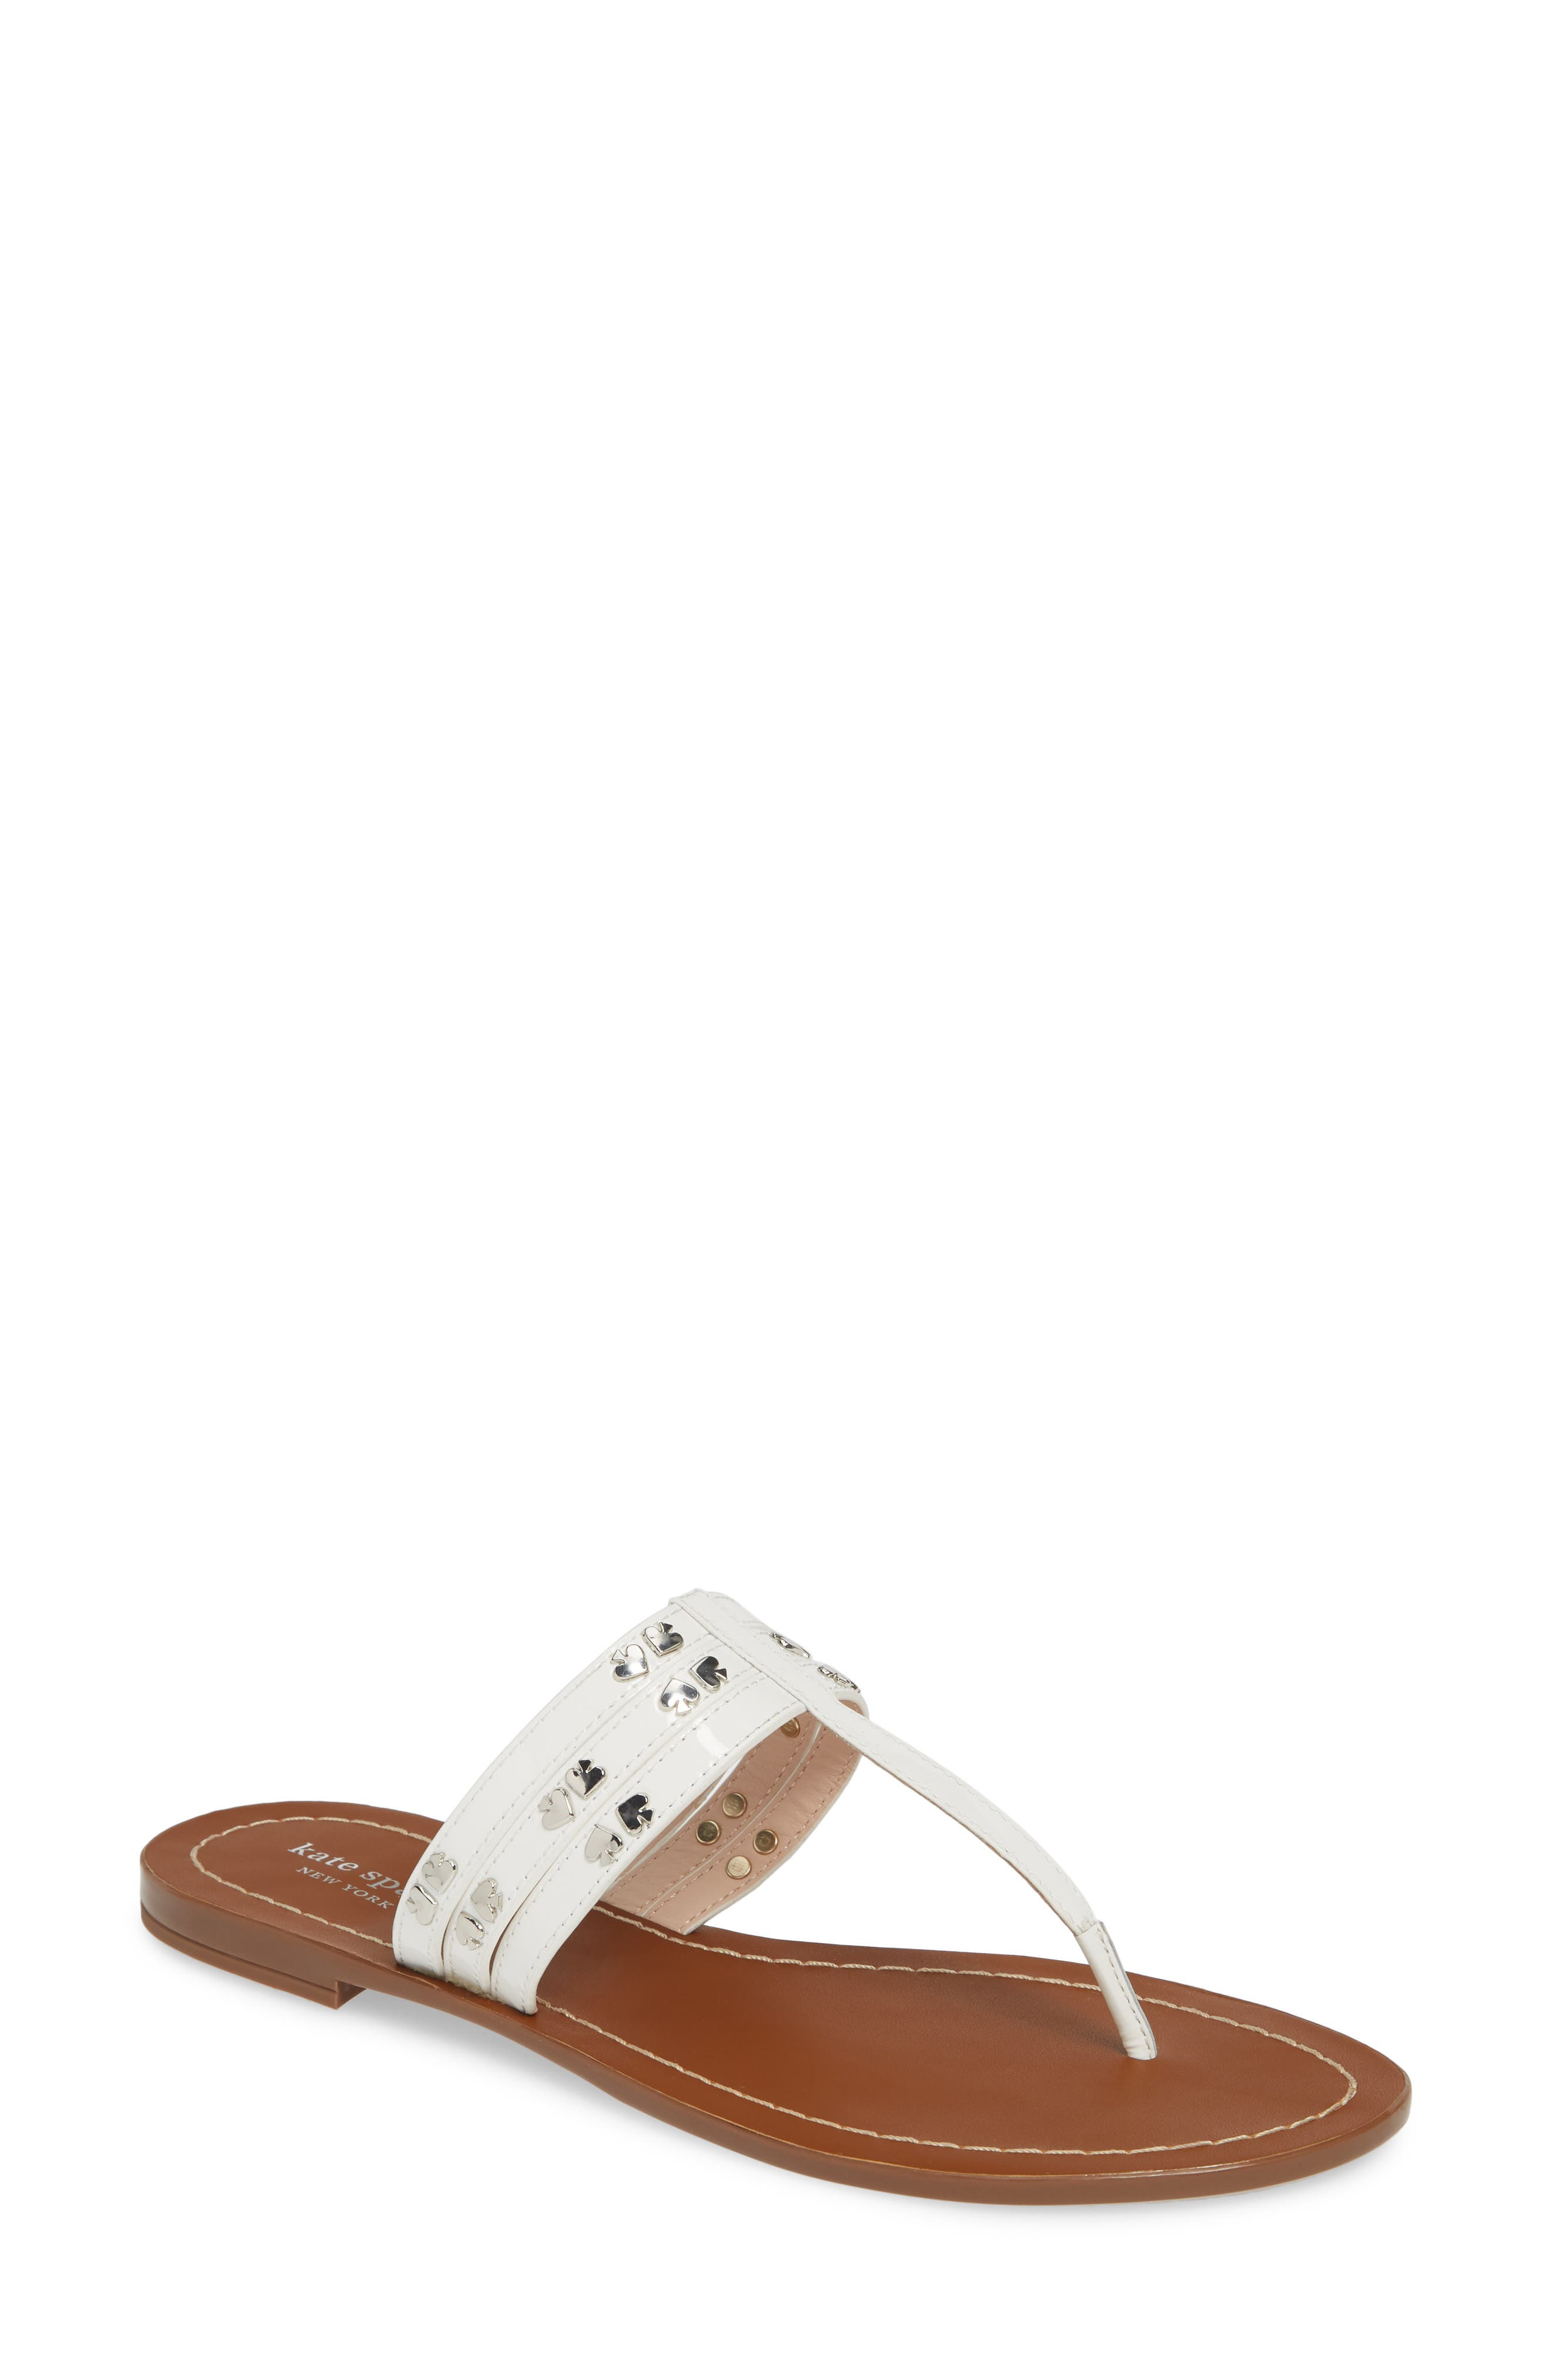 50a450ee9db0 Women s Kate Spade New York Sandals